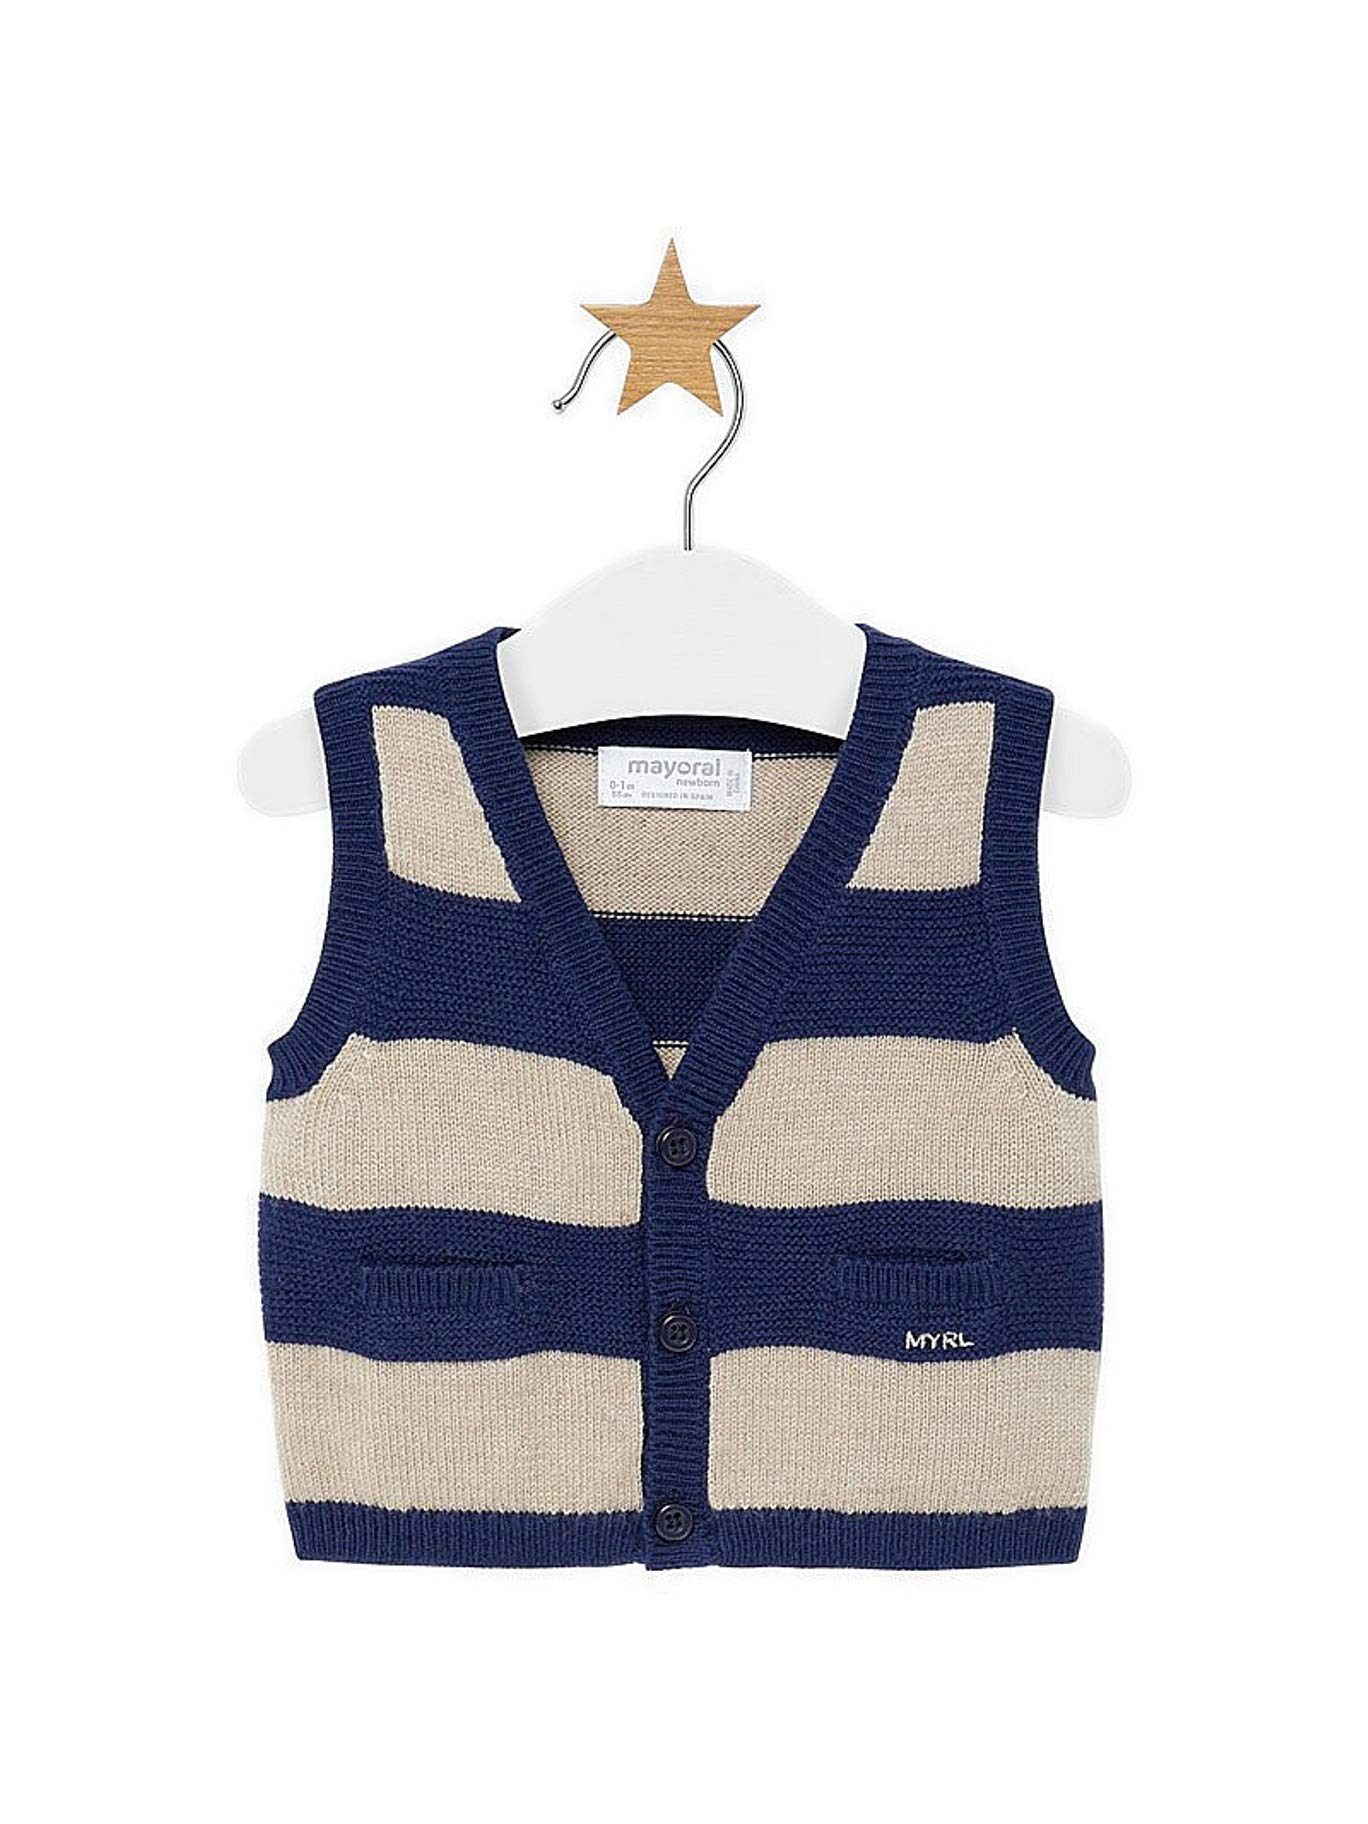 Mayoral 19-02310-063 - Knitting Vest for Baby-Boys 2-4 Months Nay-Dune by Mayoral